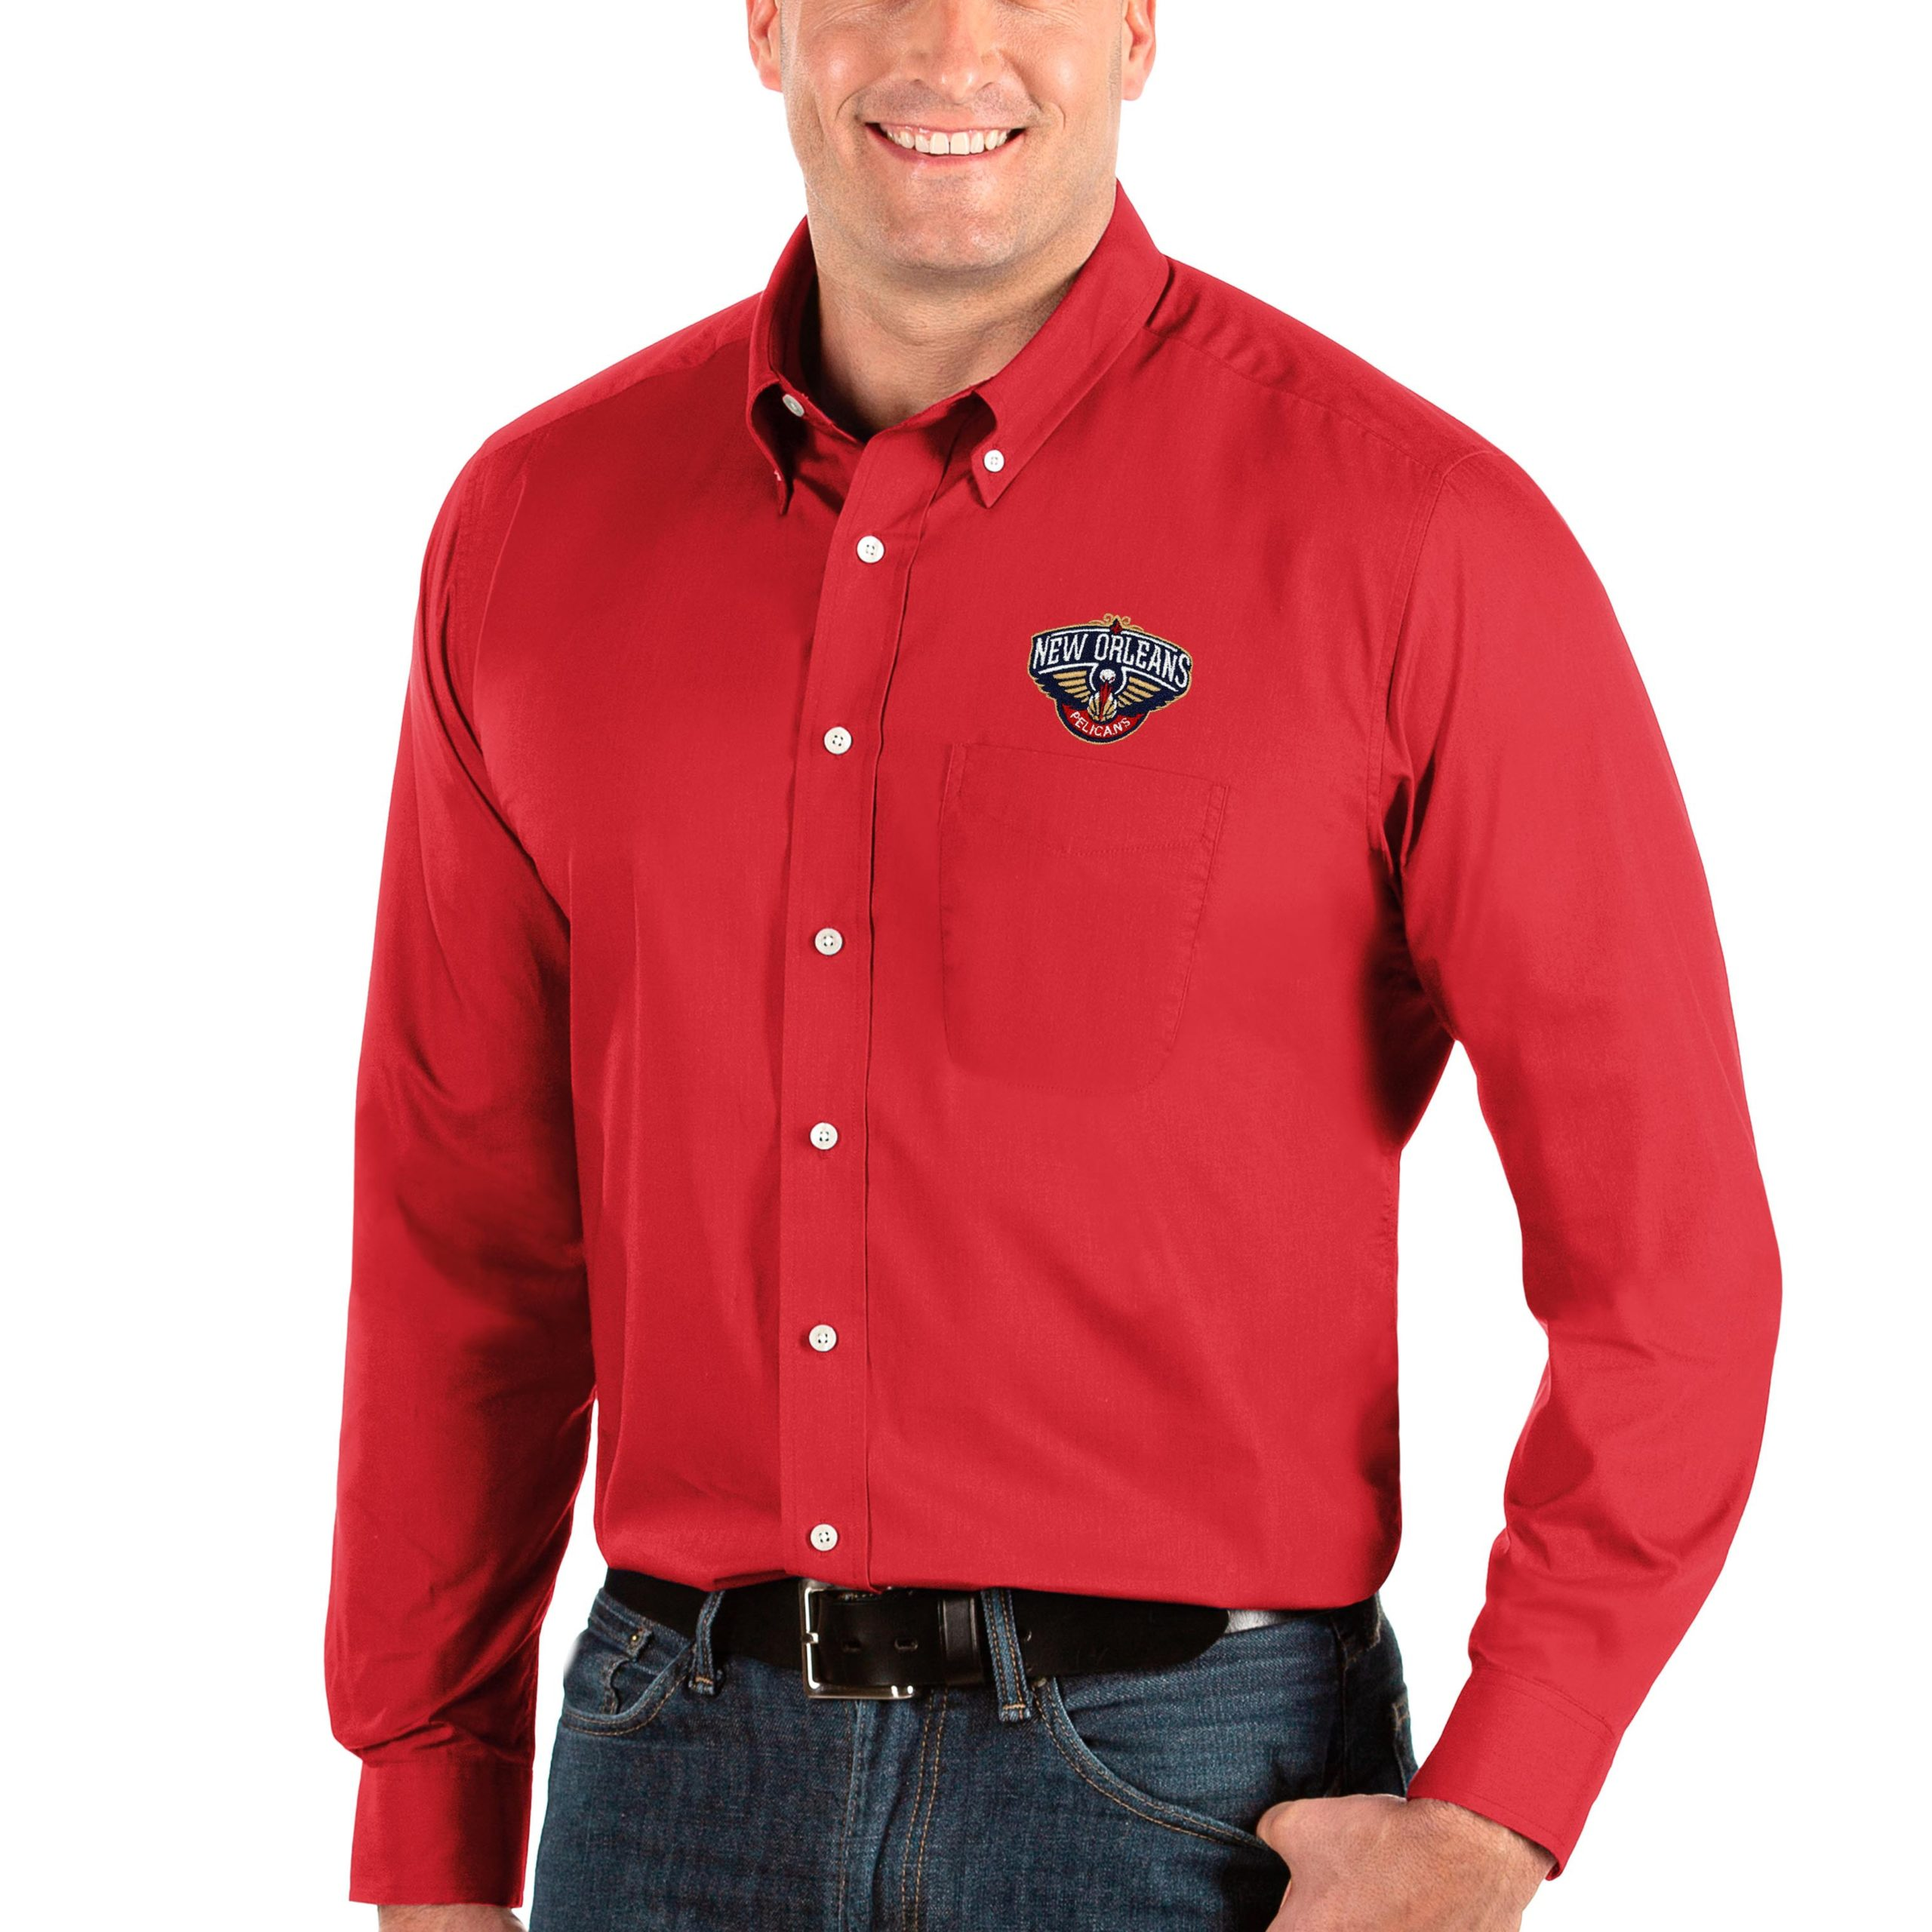 New Orleans Pelicans Antigua Big & Tall Dynasty Long Sleeve Button-Down Shirt - Red